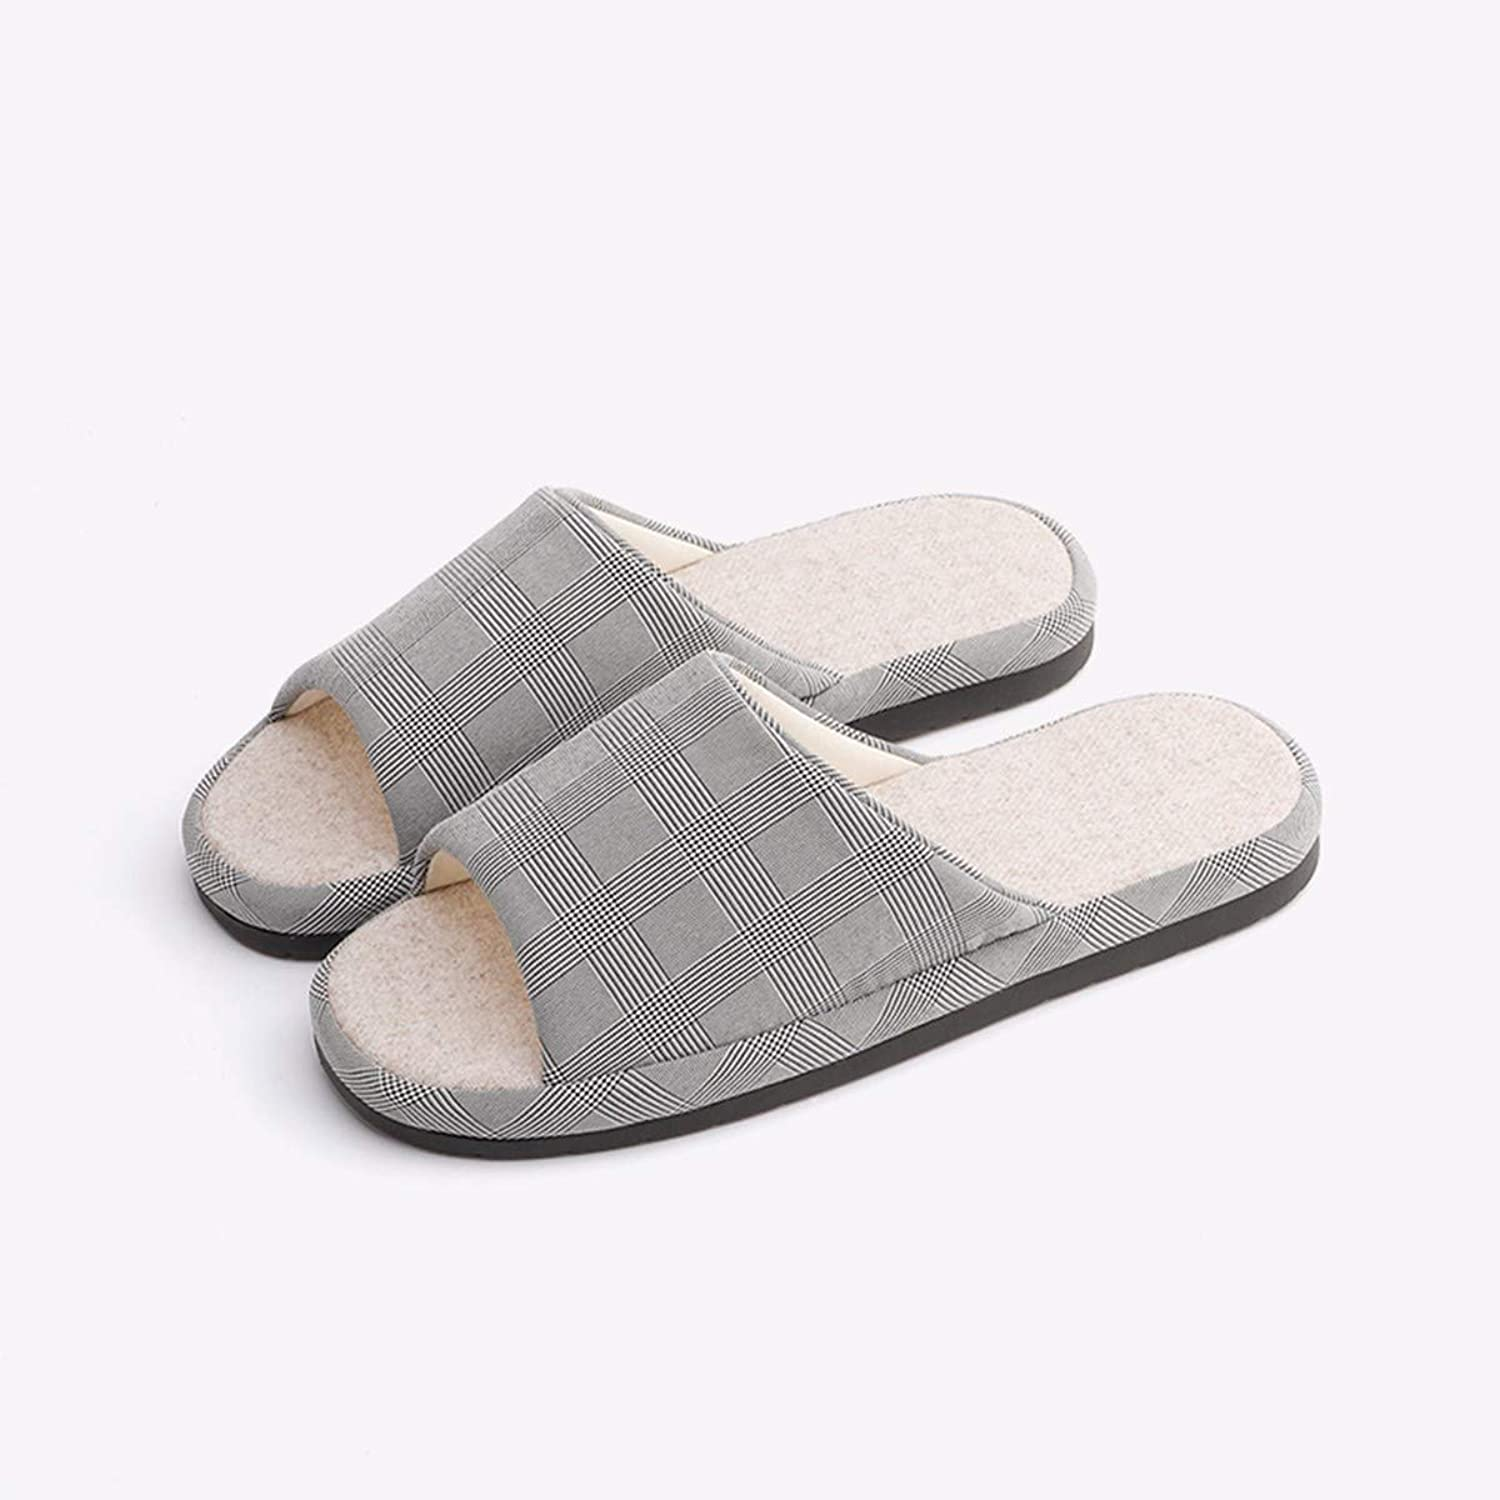 QPGGP-Slippers Home Floor Slippers, Wooden Floor, Silent, Four Seasons, Couples, Indoor Anti Slip Cotton and Slippers.